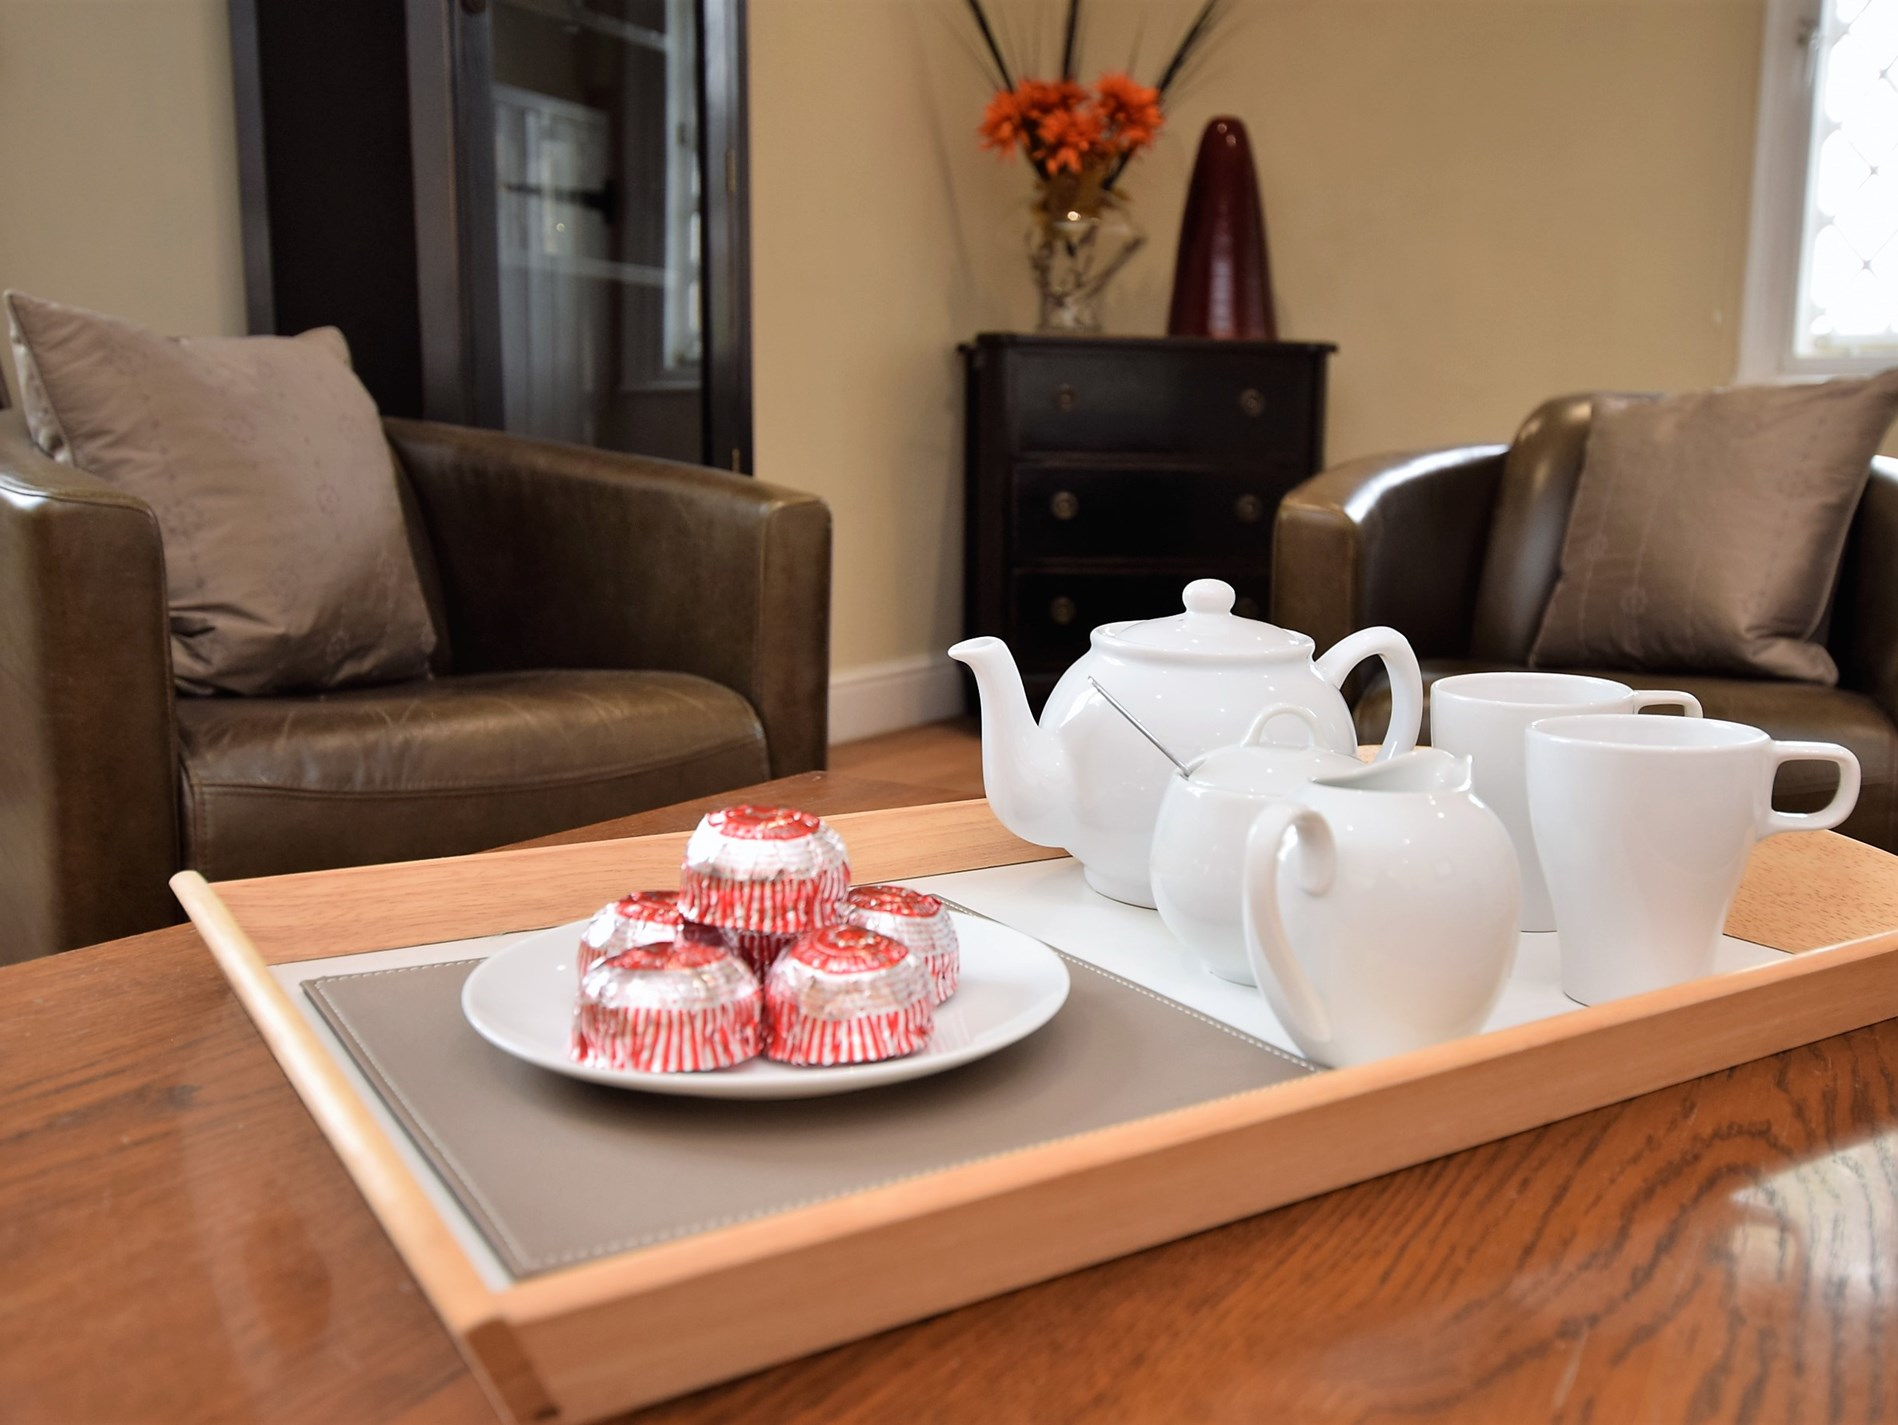 Enjoy afternoon tea after a busy day